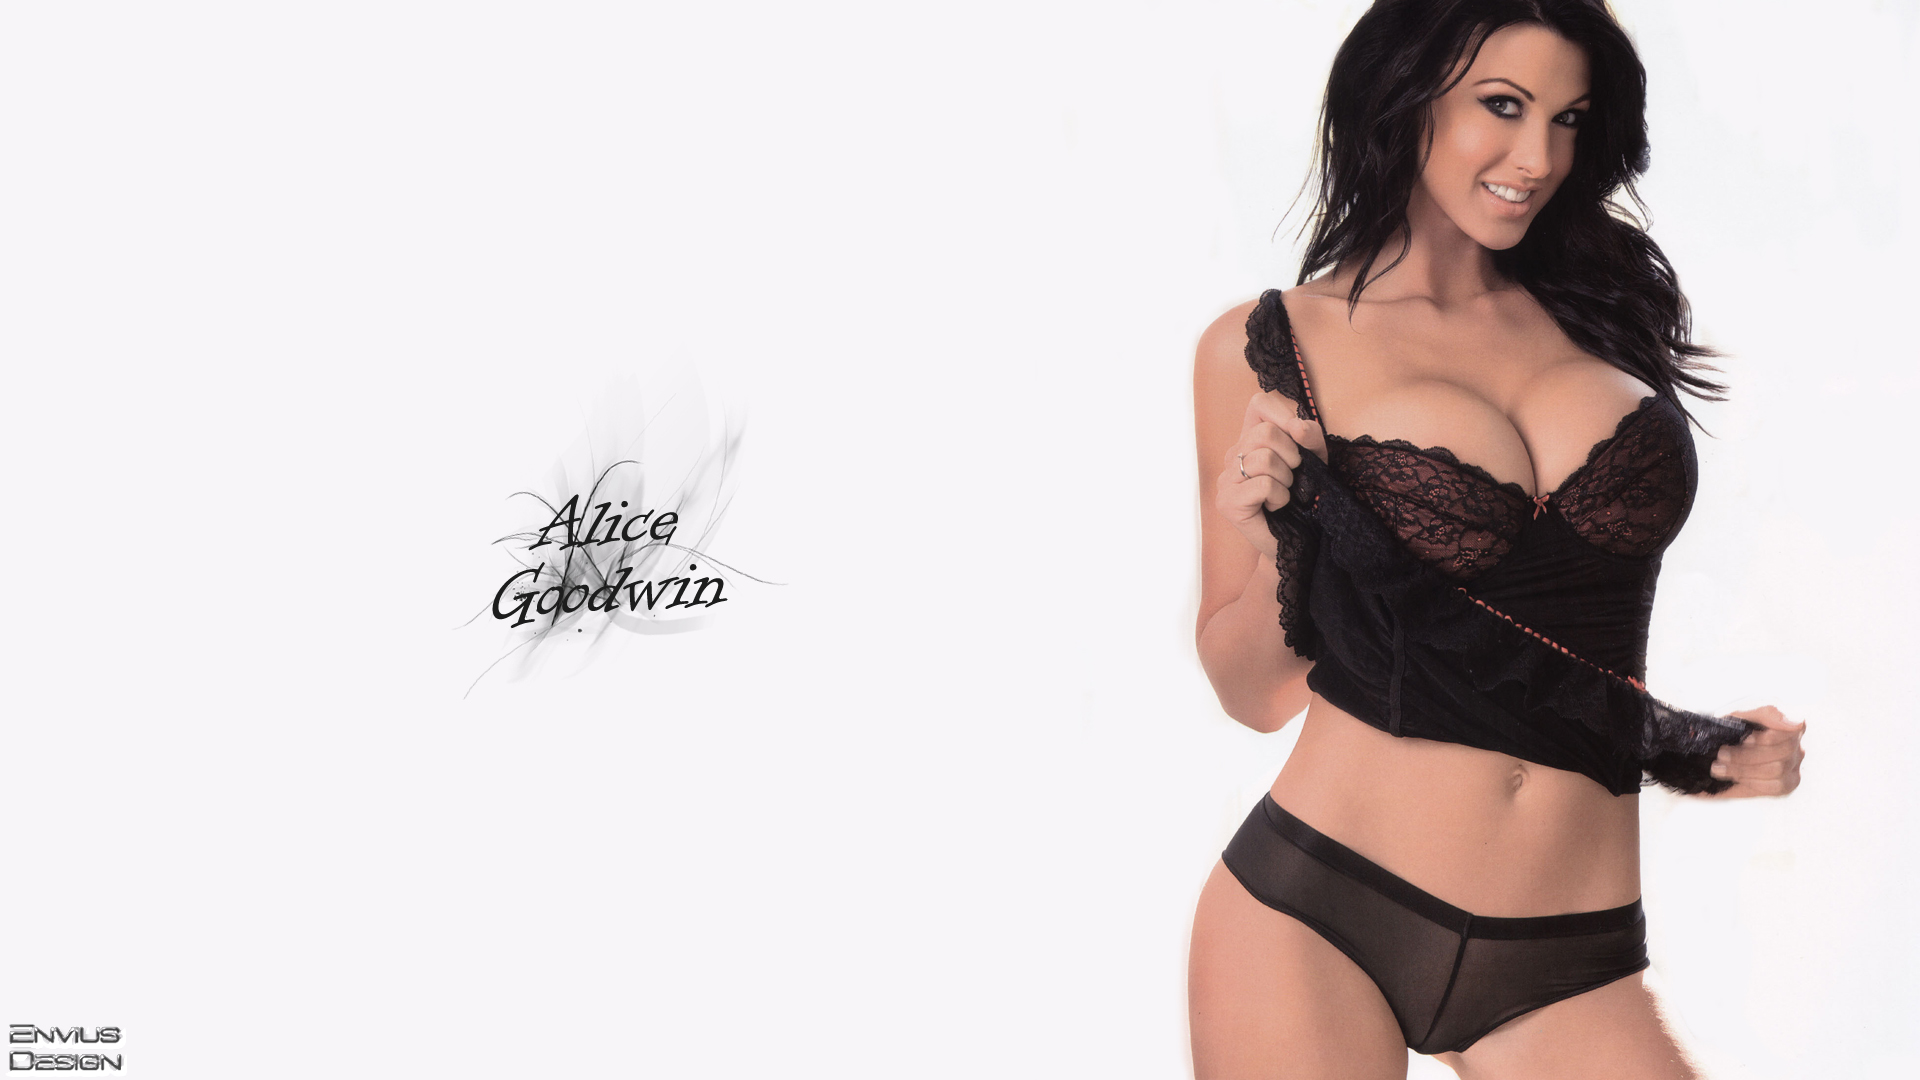 Alice Goodwin wallpaper1 by Envius88